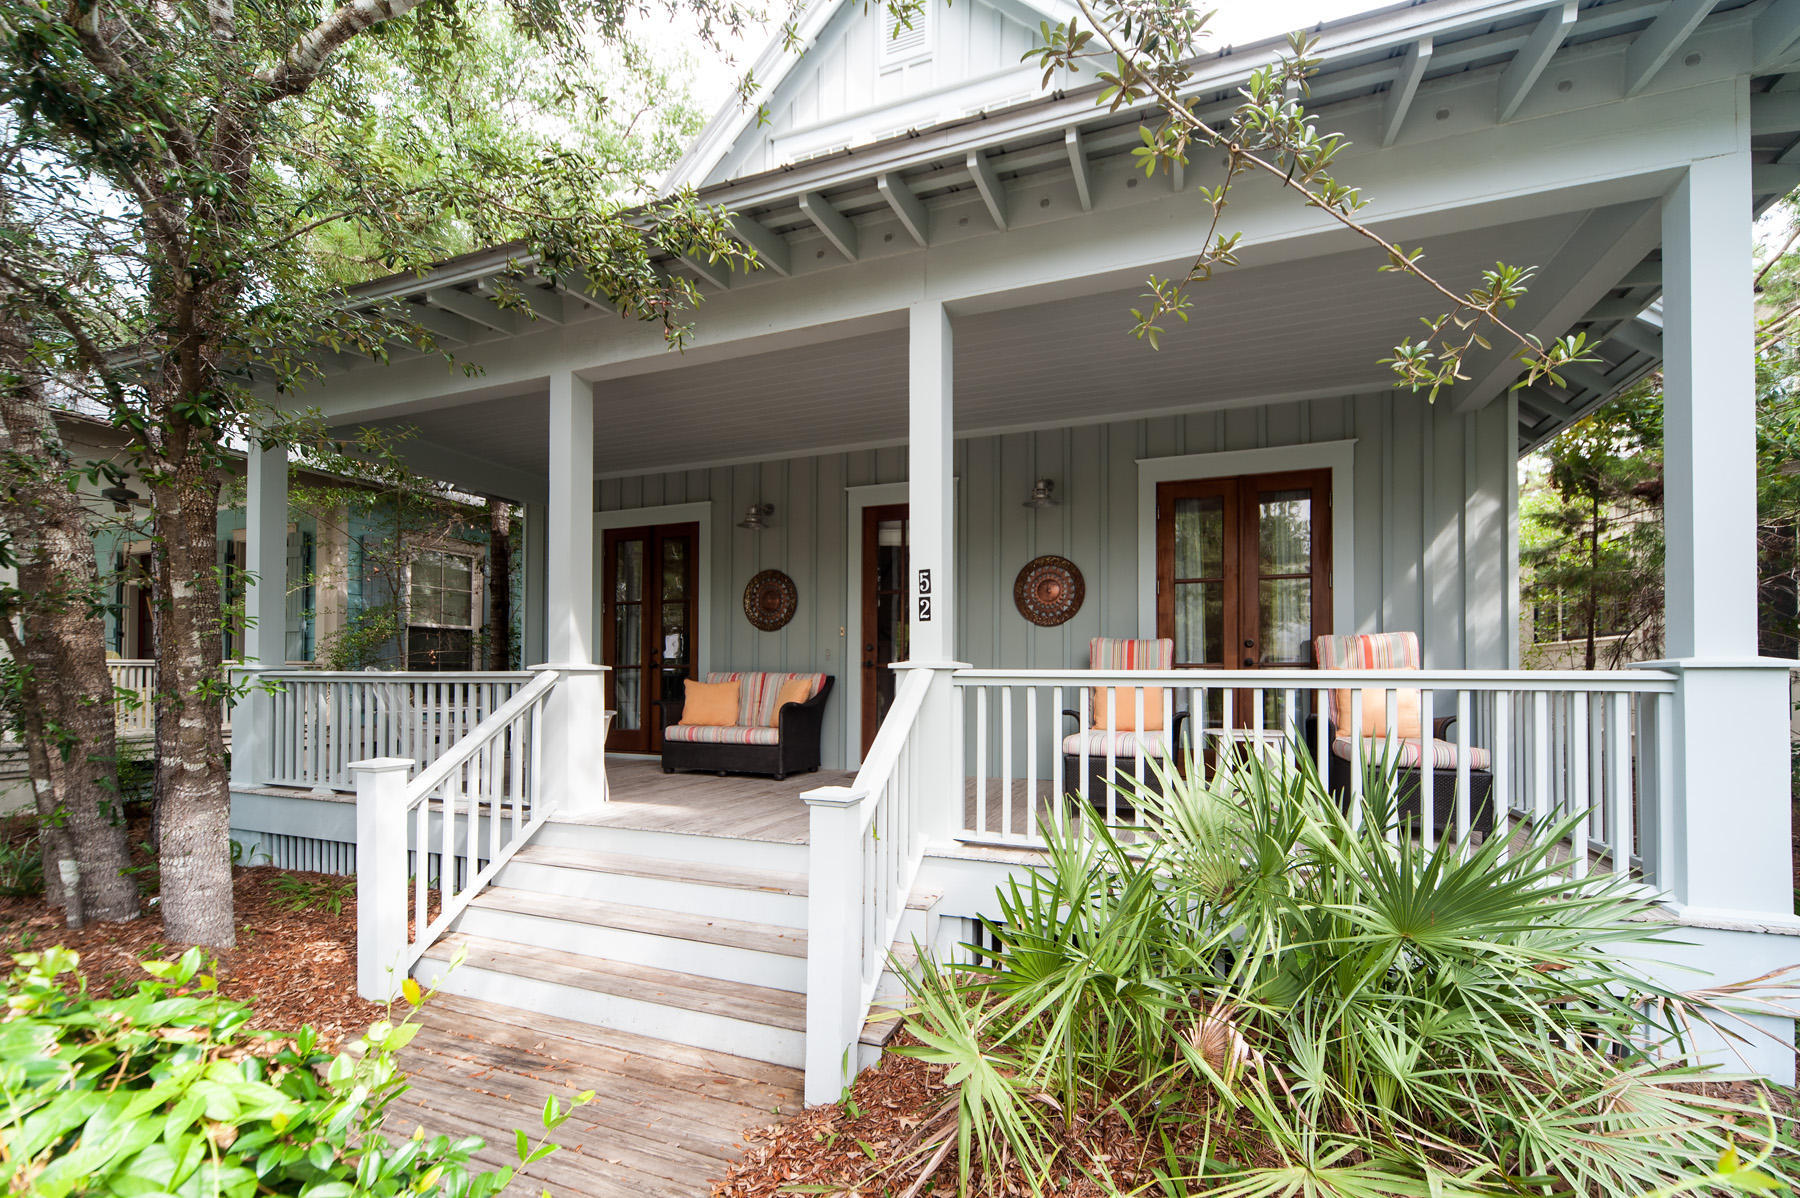 Single Family Home for Sale at CHARMING COTTAGE IN BEACH COMMUNITY 52 Spartina Cir Watercolor, Santa Rosa Beach, Florida 32459 United States